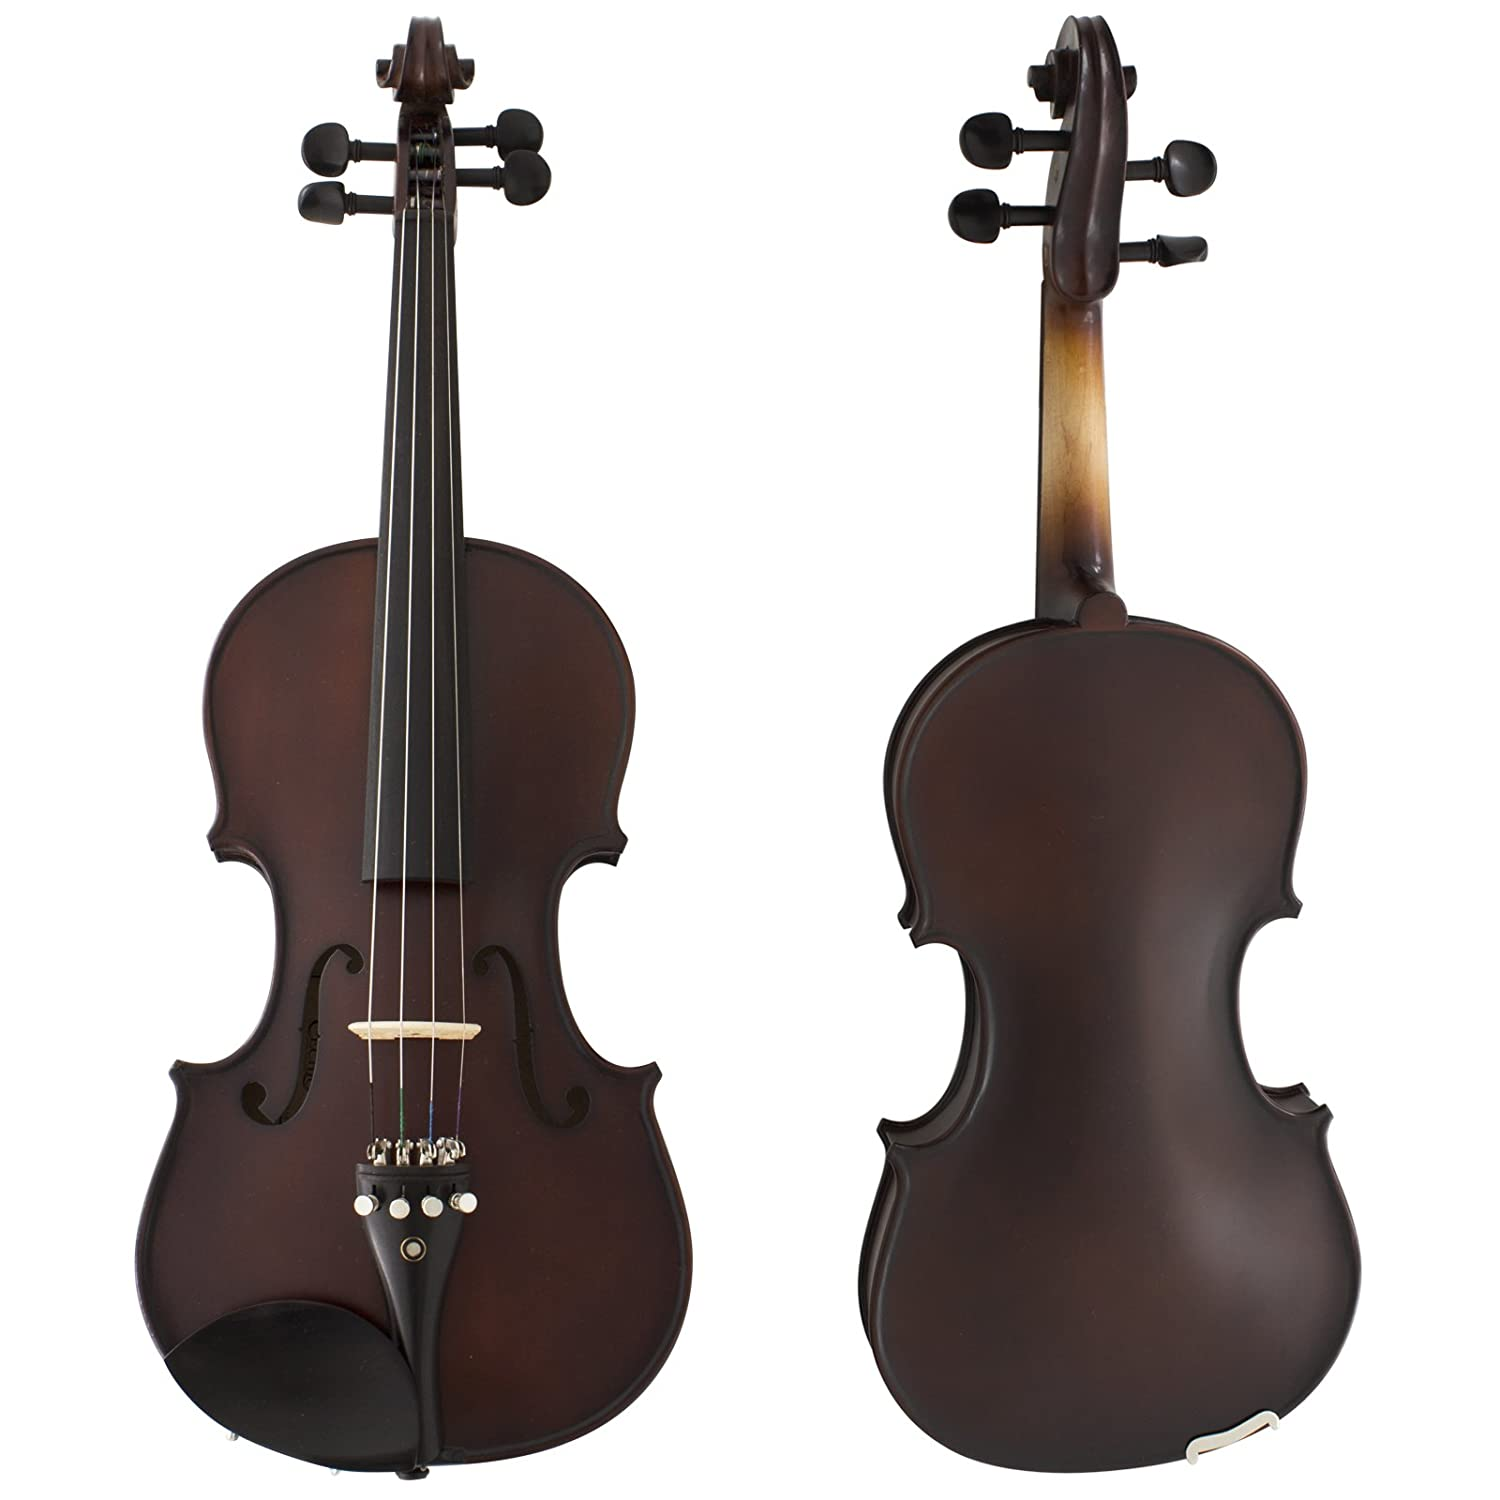 Cecilio CVN-EAV Ebony Fitted Solid Wood Violin with Deluxe Oblong Case, Antique Varnish, Size 4/4 (Full Size) 4/4CVN-EAV+SR